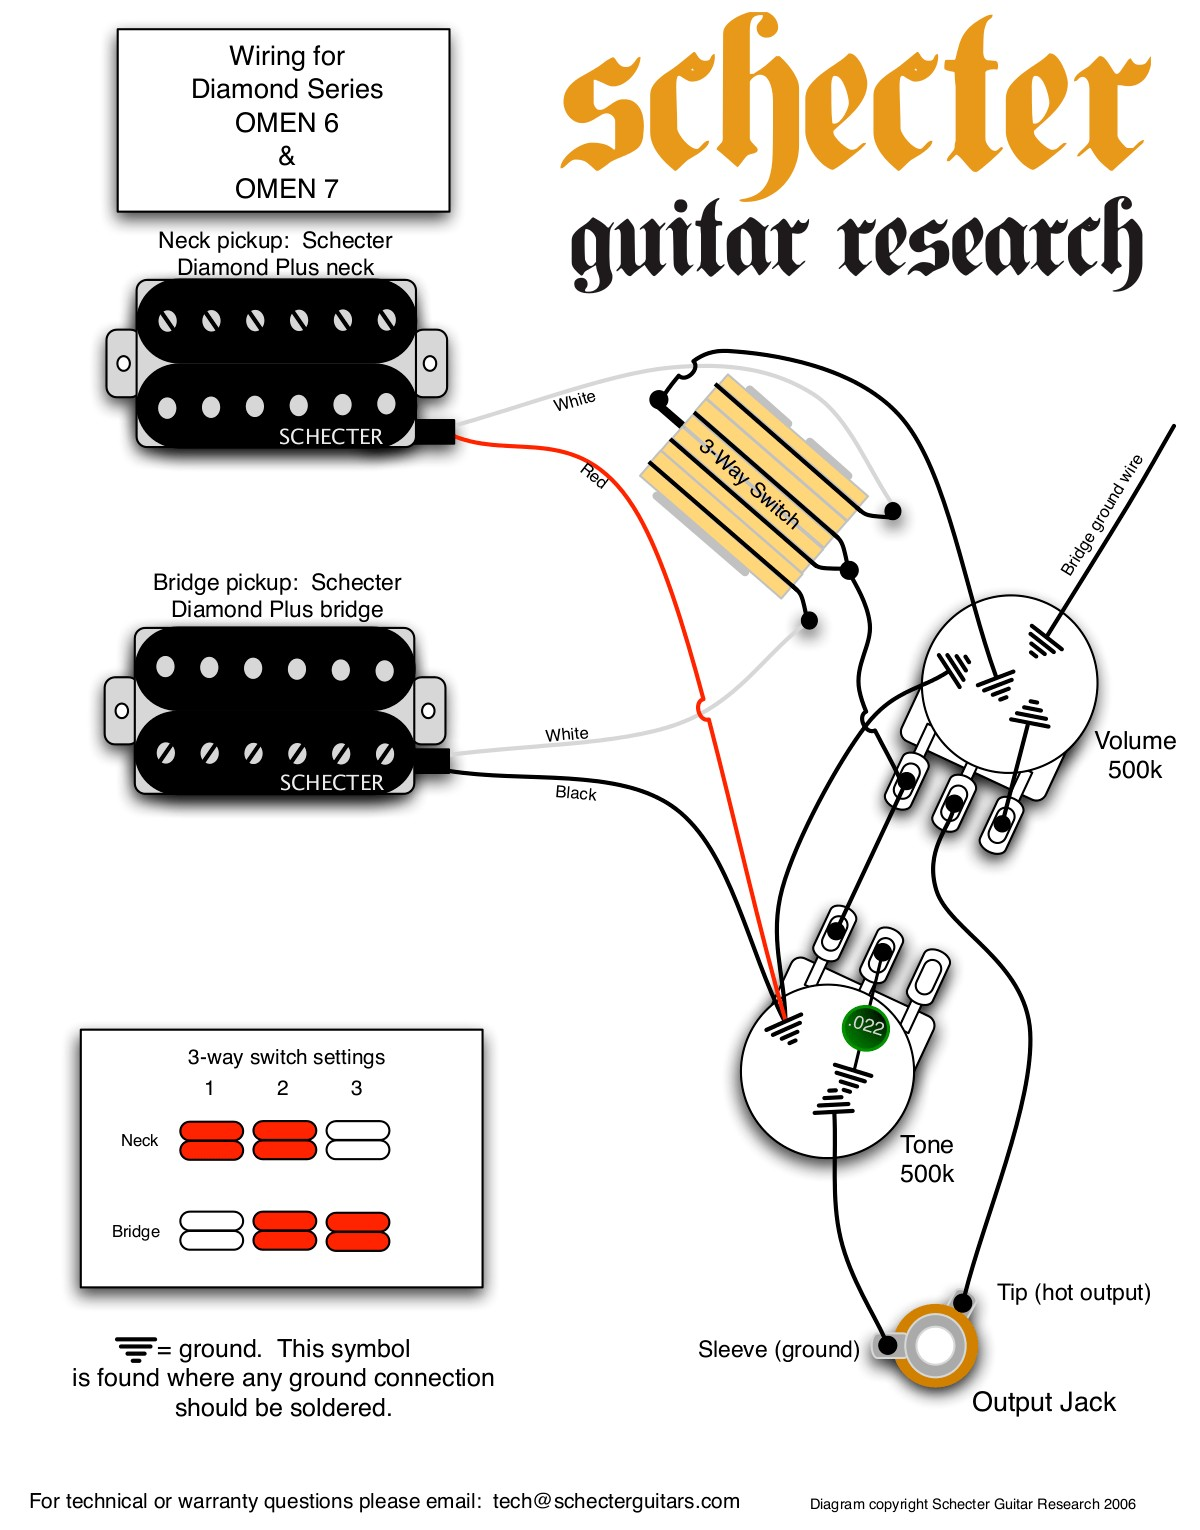 Schecter B Wiring Diagram - Wiring Diagram Mega on guitar switch wiring, guitar brands a-z, guitar repair tips, guitar wiring 101, guitar made out of a box, guitar circuit diagram, guitar jack wiring, guitar schematics, guitar dimensions, guitar tone control wiring, guitar on ground, guitar wiring theory, guitar wiring for dummies, guitar wiring harness, guitar wiring basics, guitar potentiometer wiring, guitar electronics wiring, guitar amp diagram, guitar parts diagram,